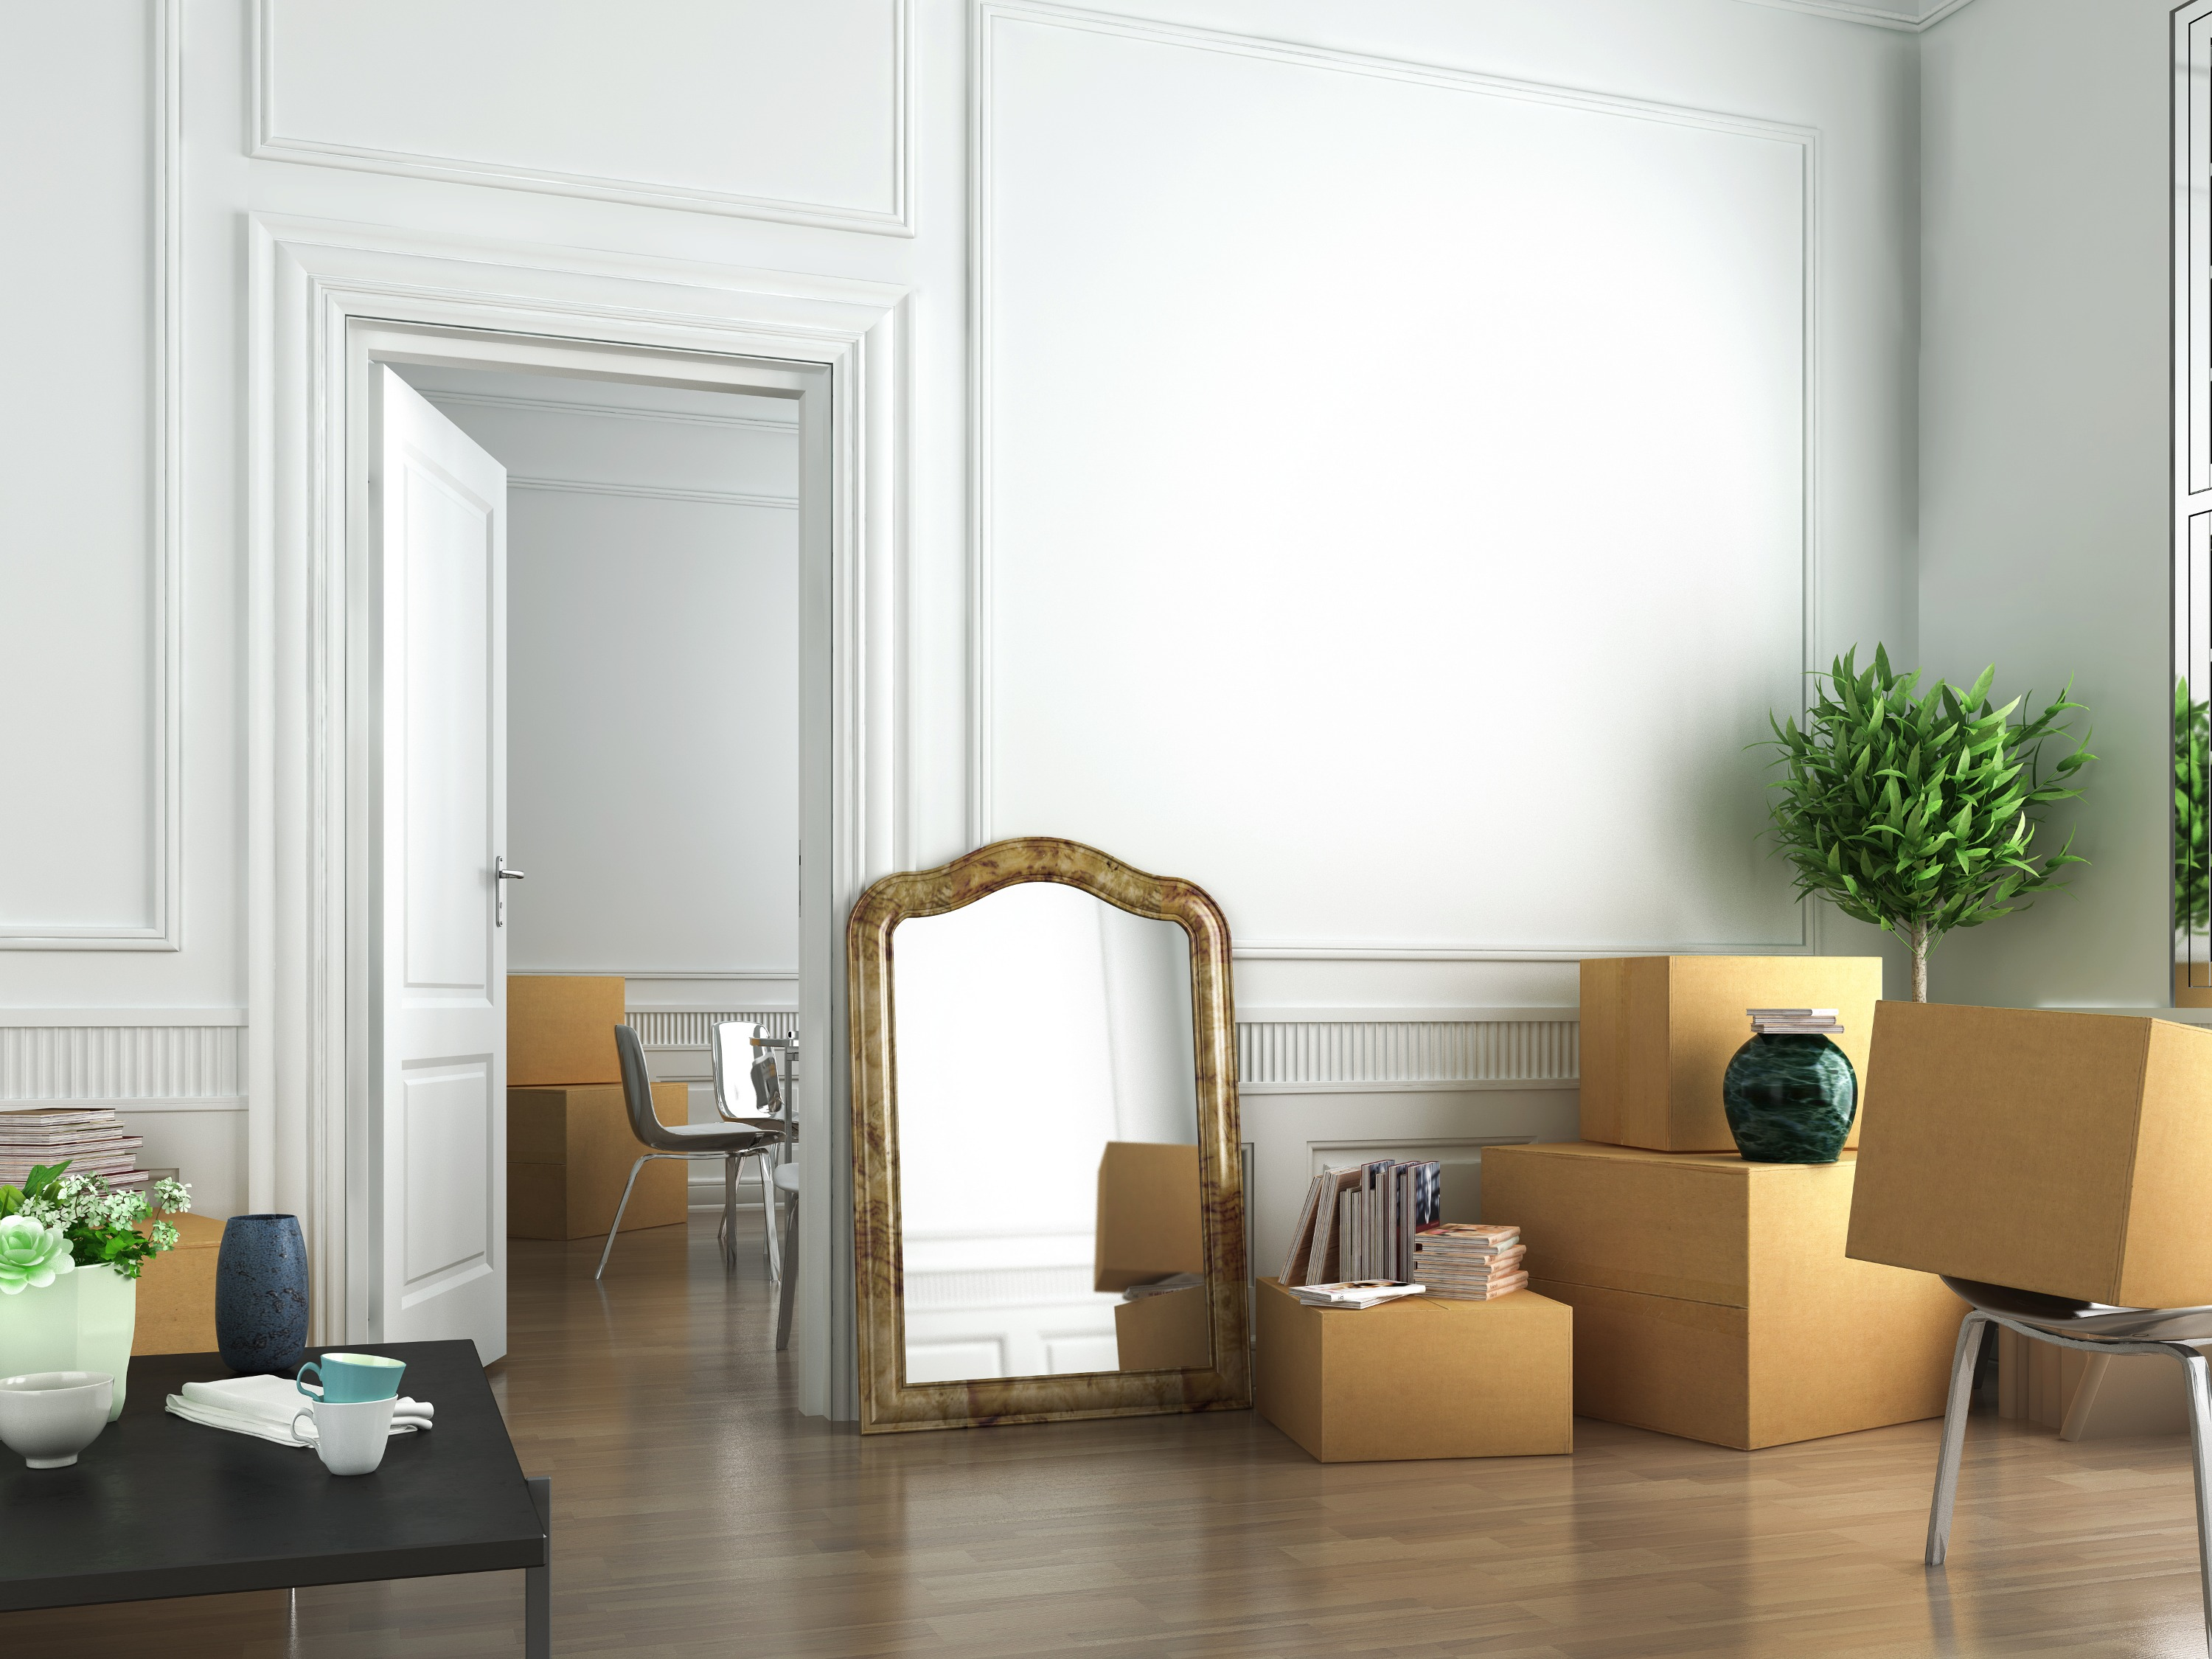 A white apartment with brown cardboard boxes, a mirror, and a green plant.